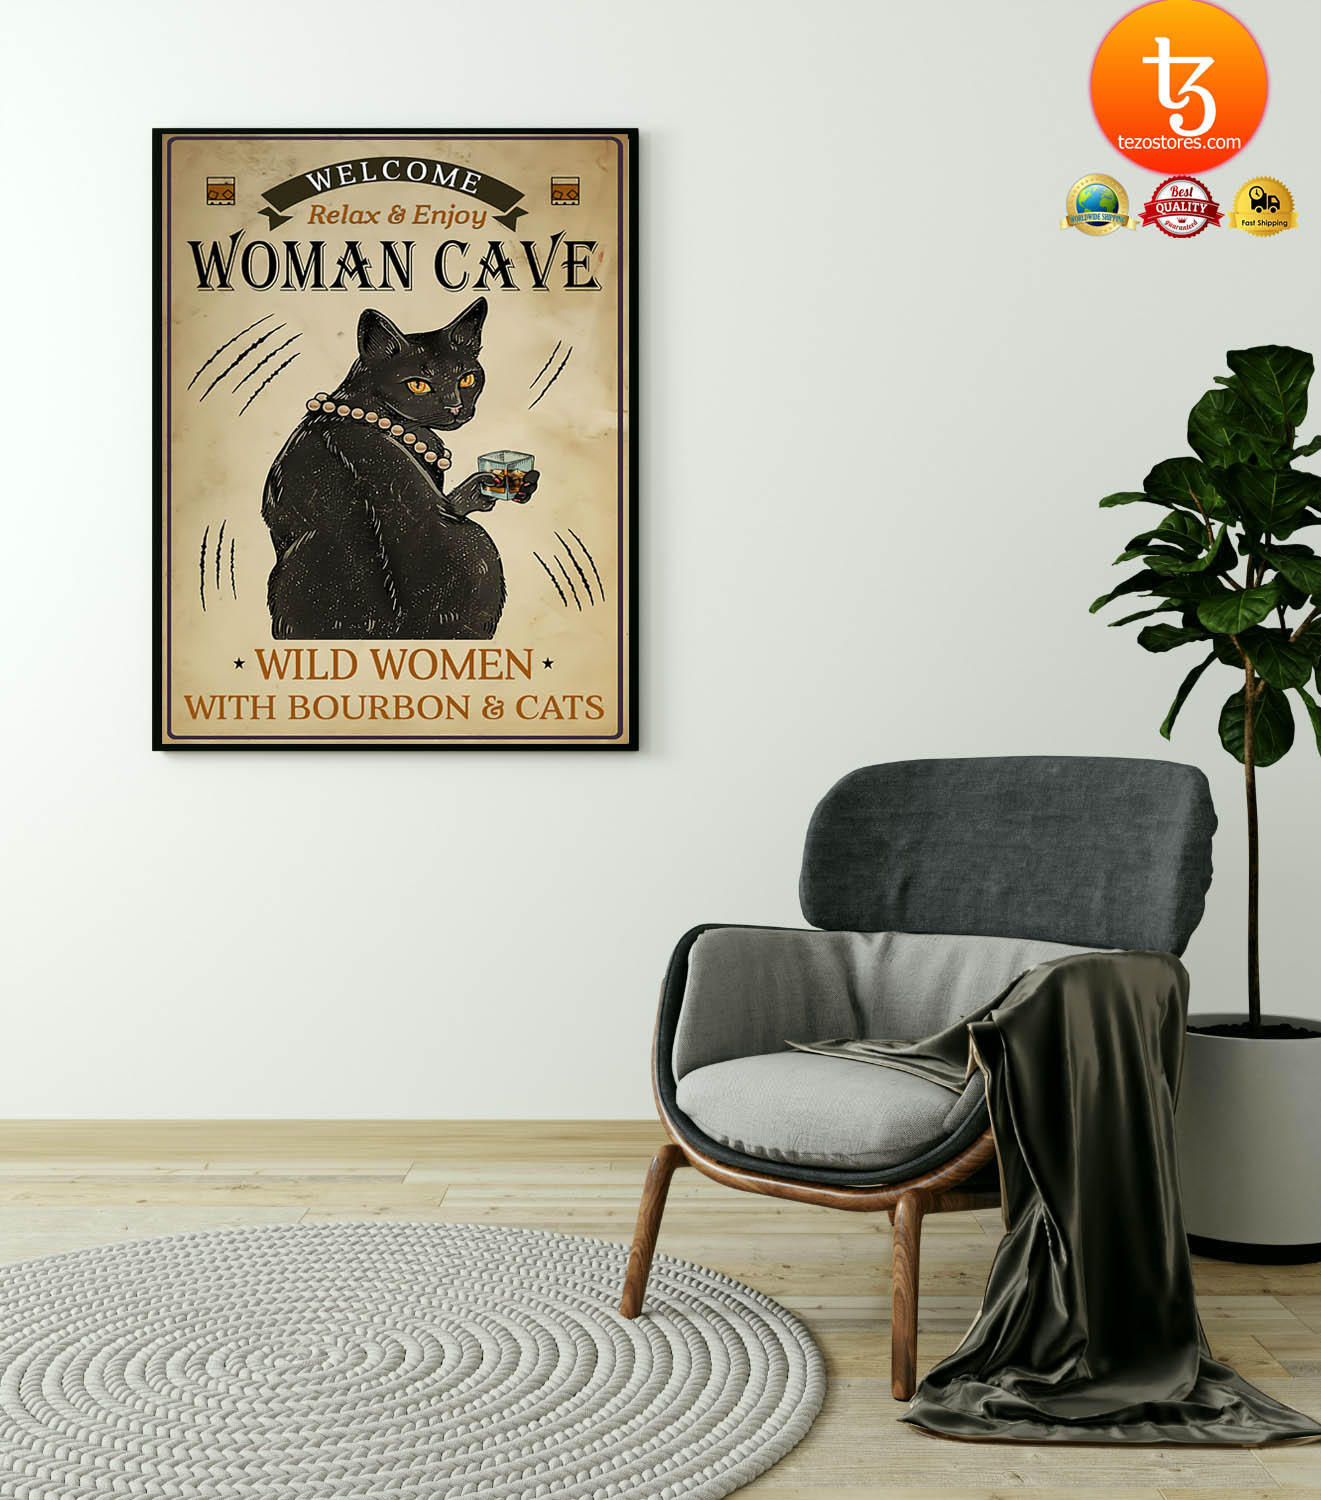 Welcome relax enjoy woman cave will women with bourbon and cats poster 19